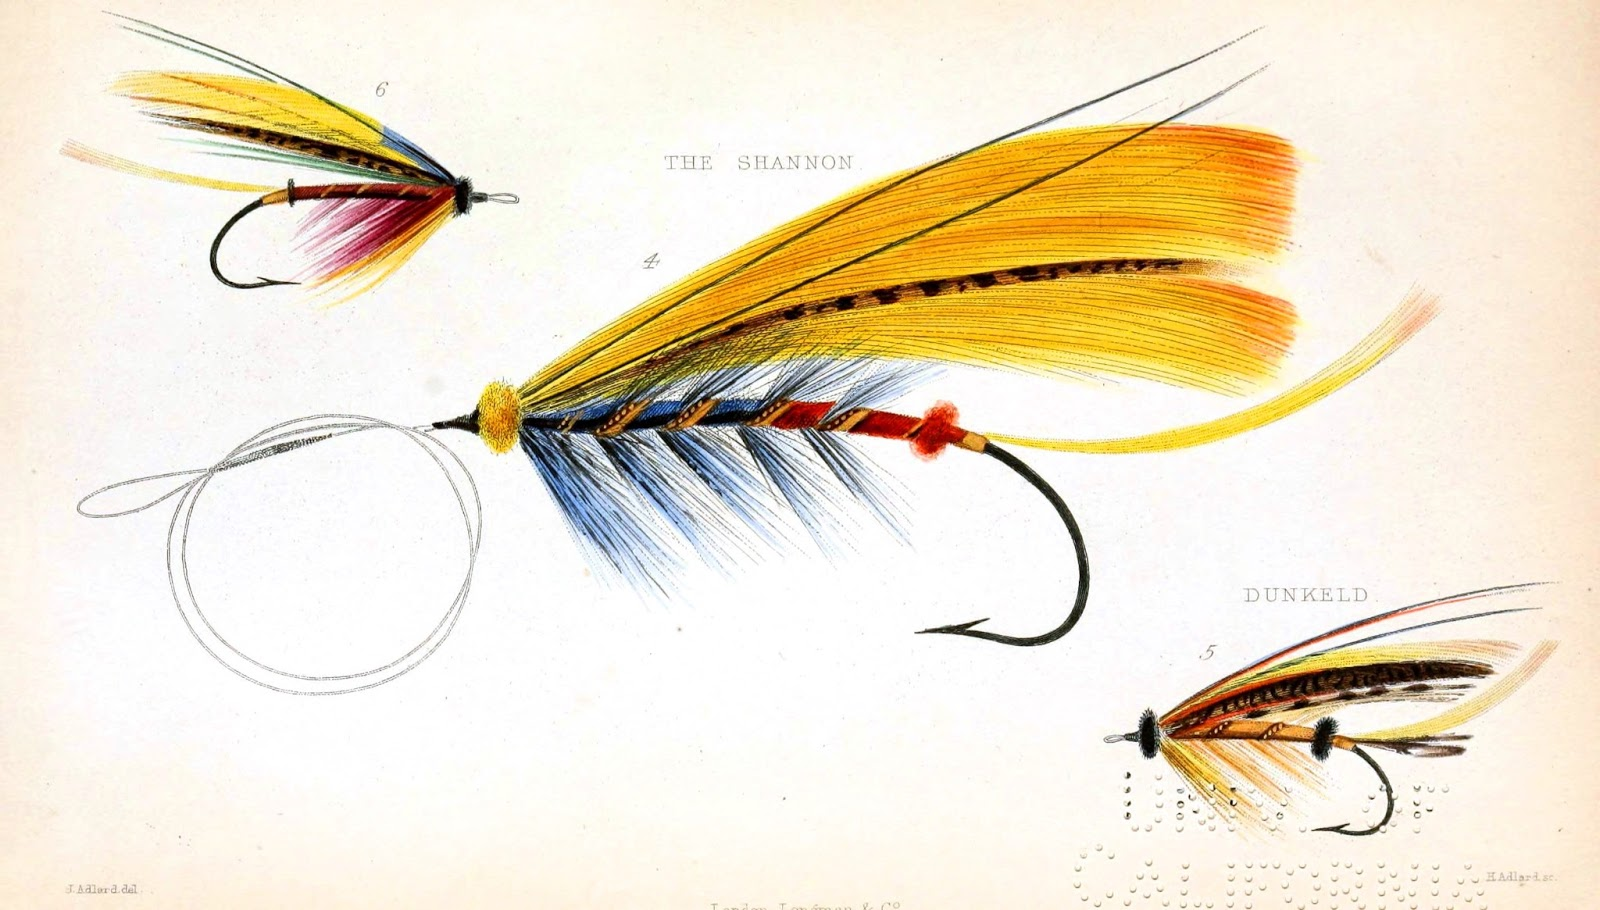 Vintage Fishing Lures Clipart - Clipart Kid